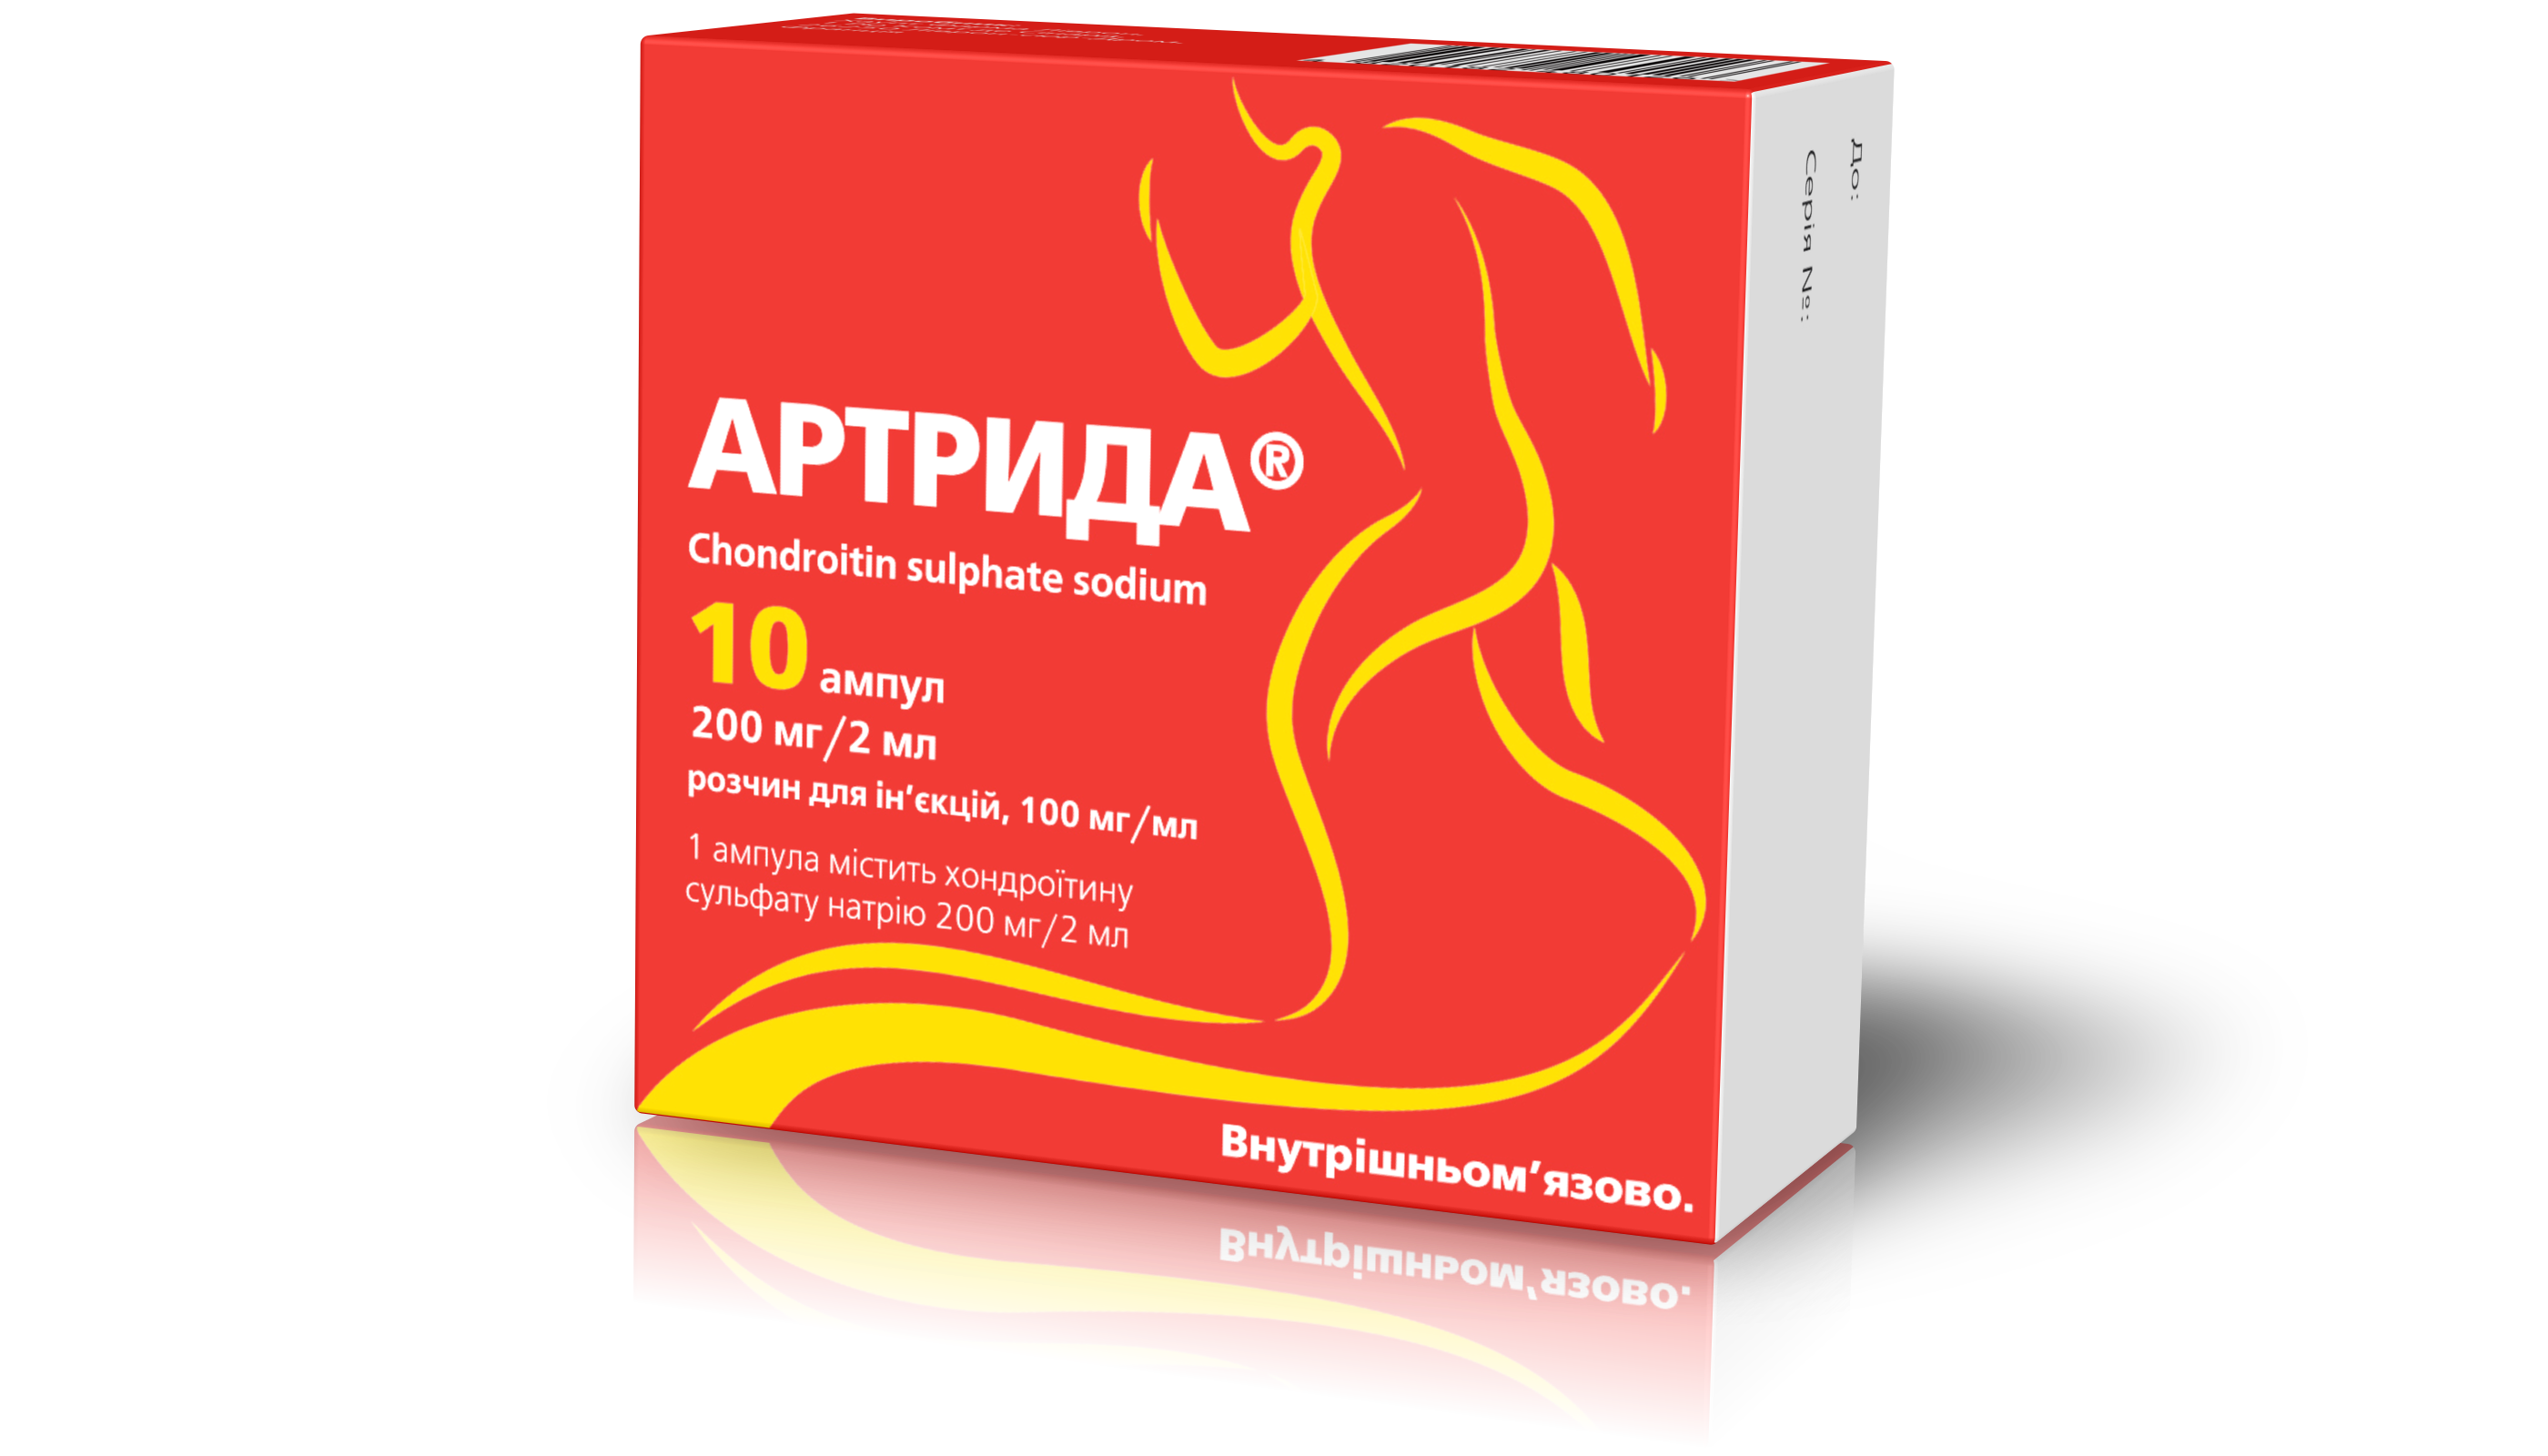 The effectiveness of Artrida® for lower back pain. O.H.  Morozova, A.A.  Yaroshevskiy, Ya.V. Lypynskaya